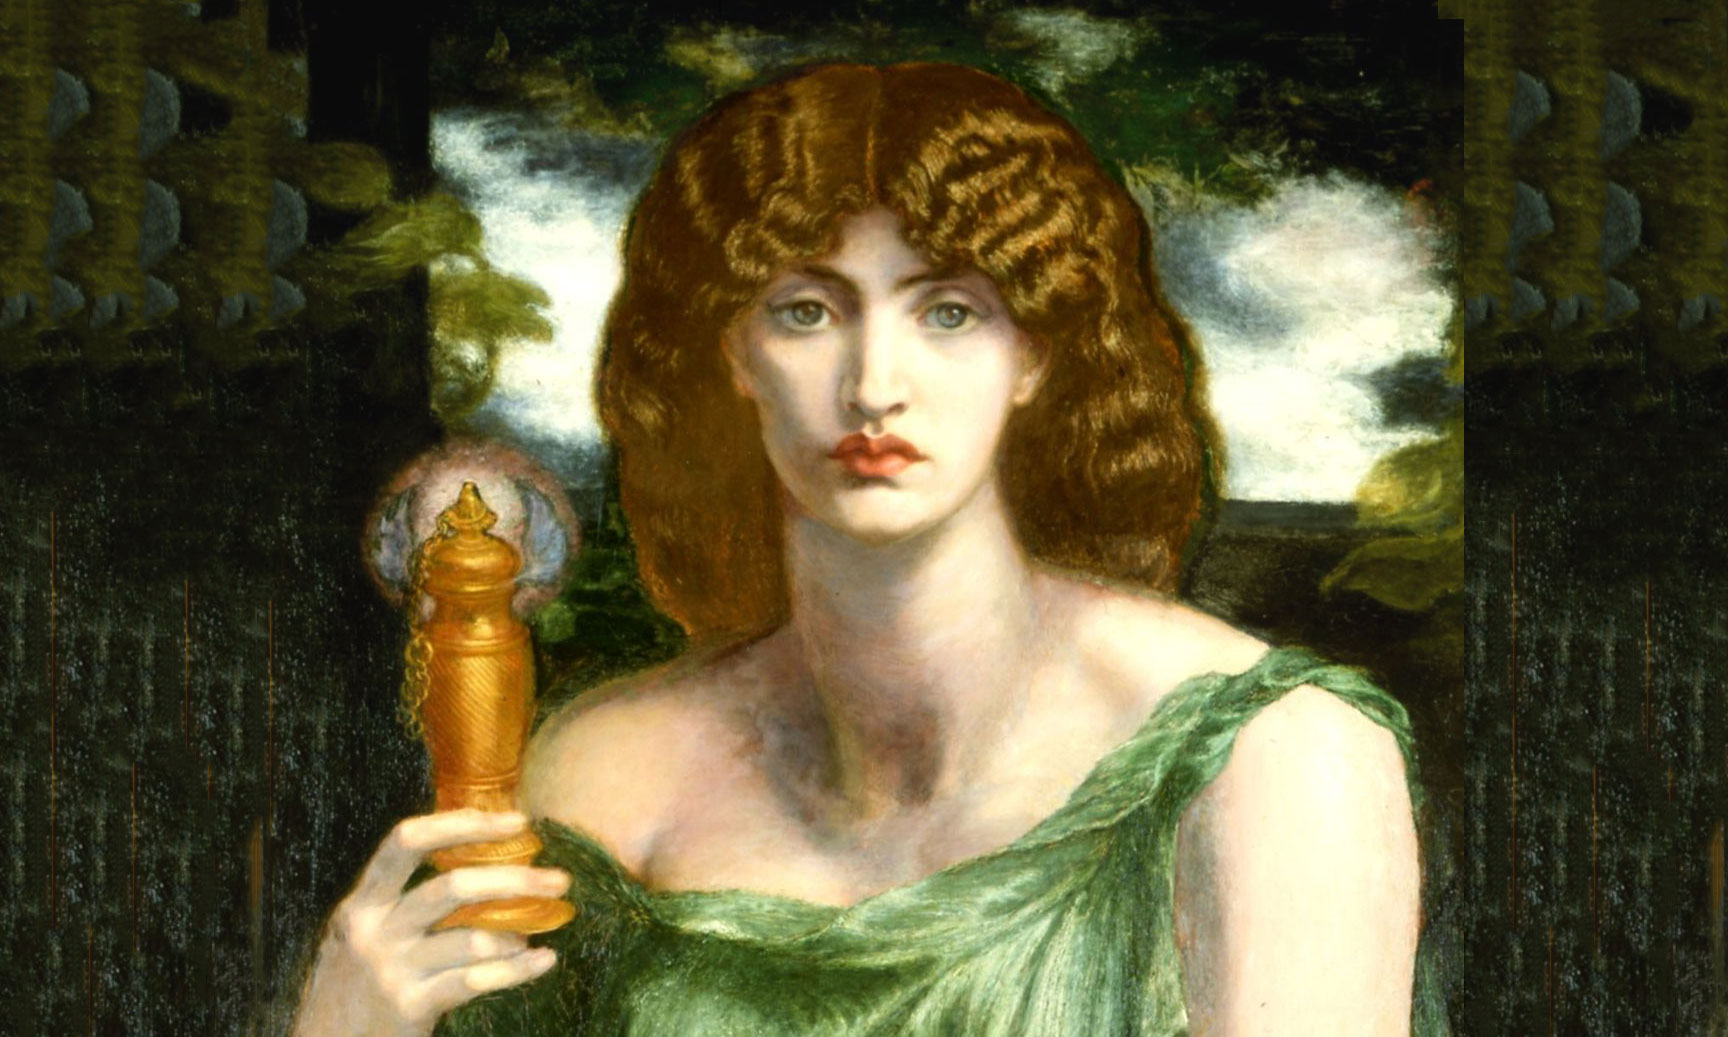 Mnemosyne (aka Lamp of Memory or Ricordanza), c. 1876 to 1881, by Dante Gabriel Rossetti